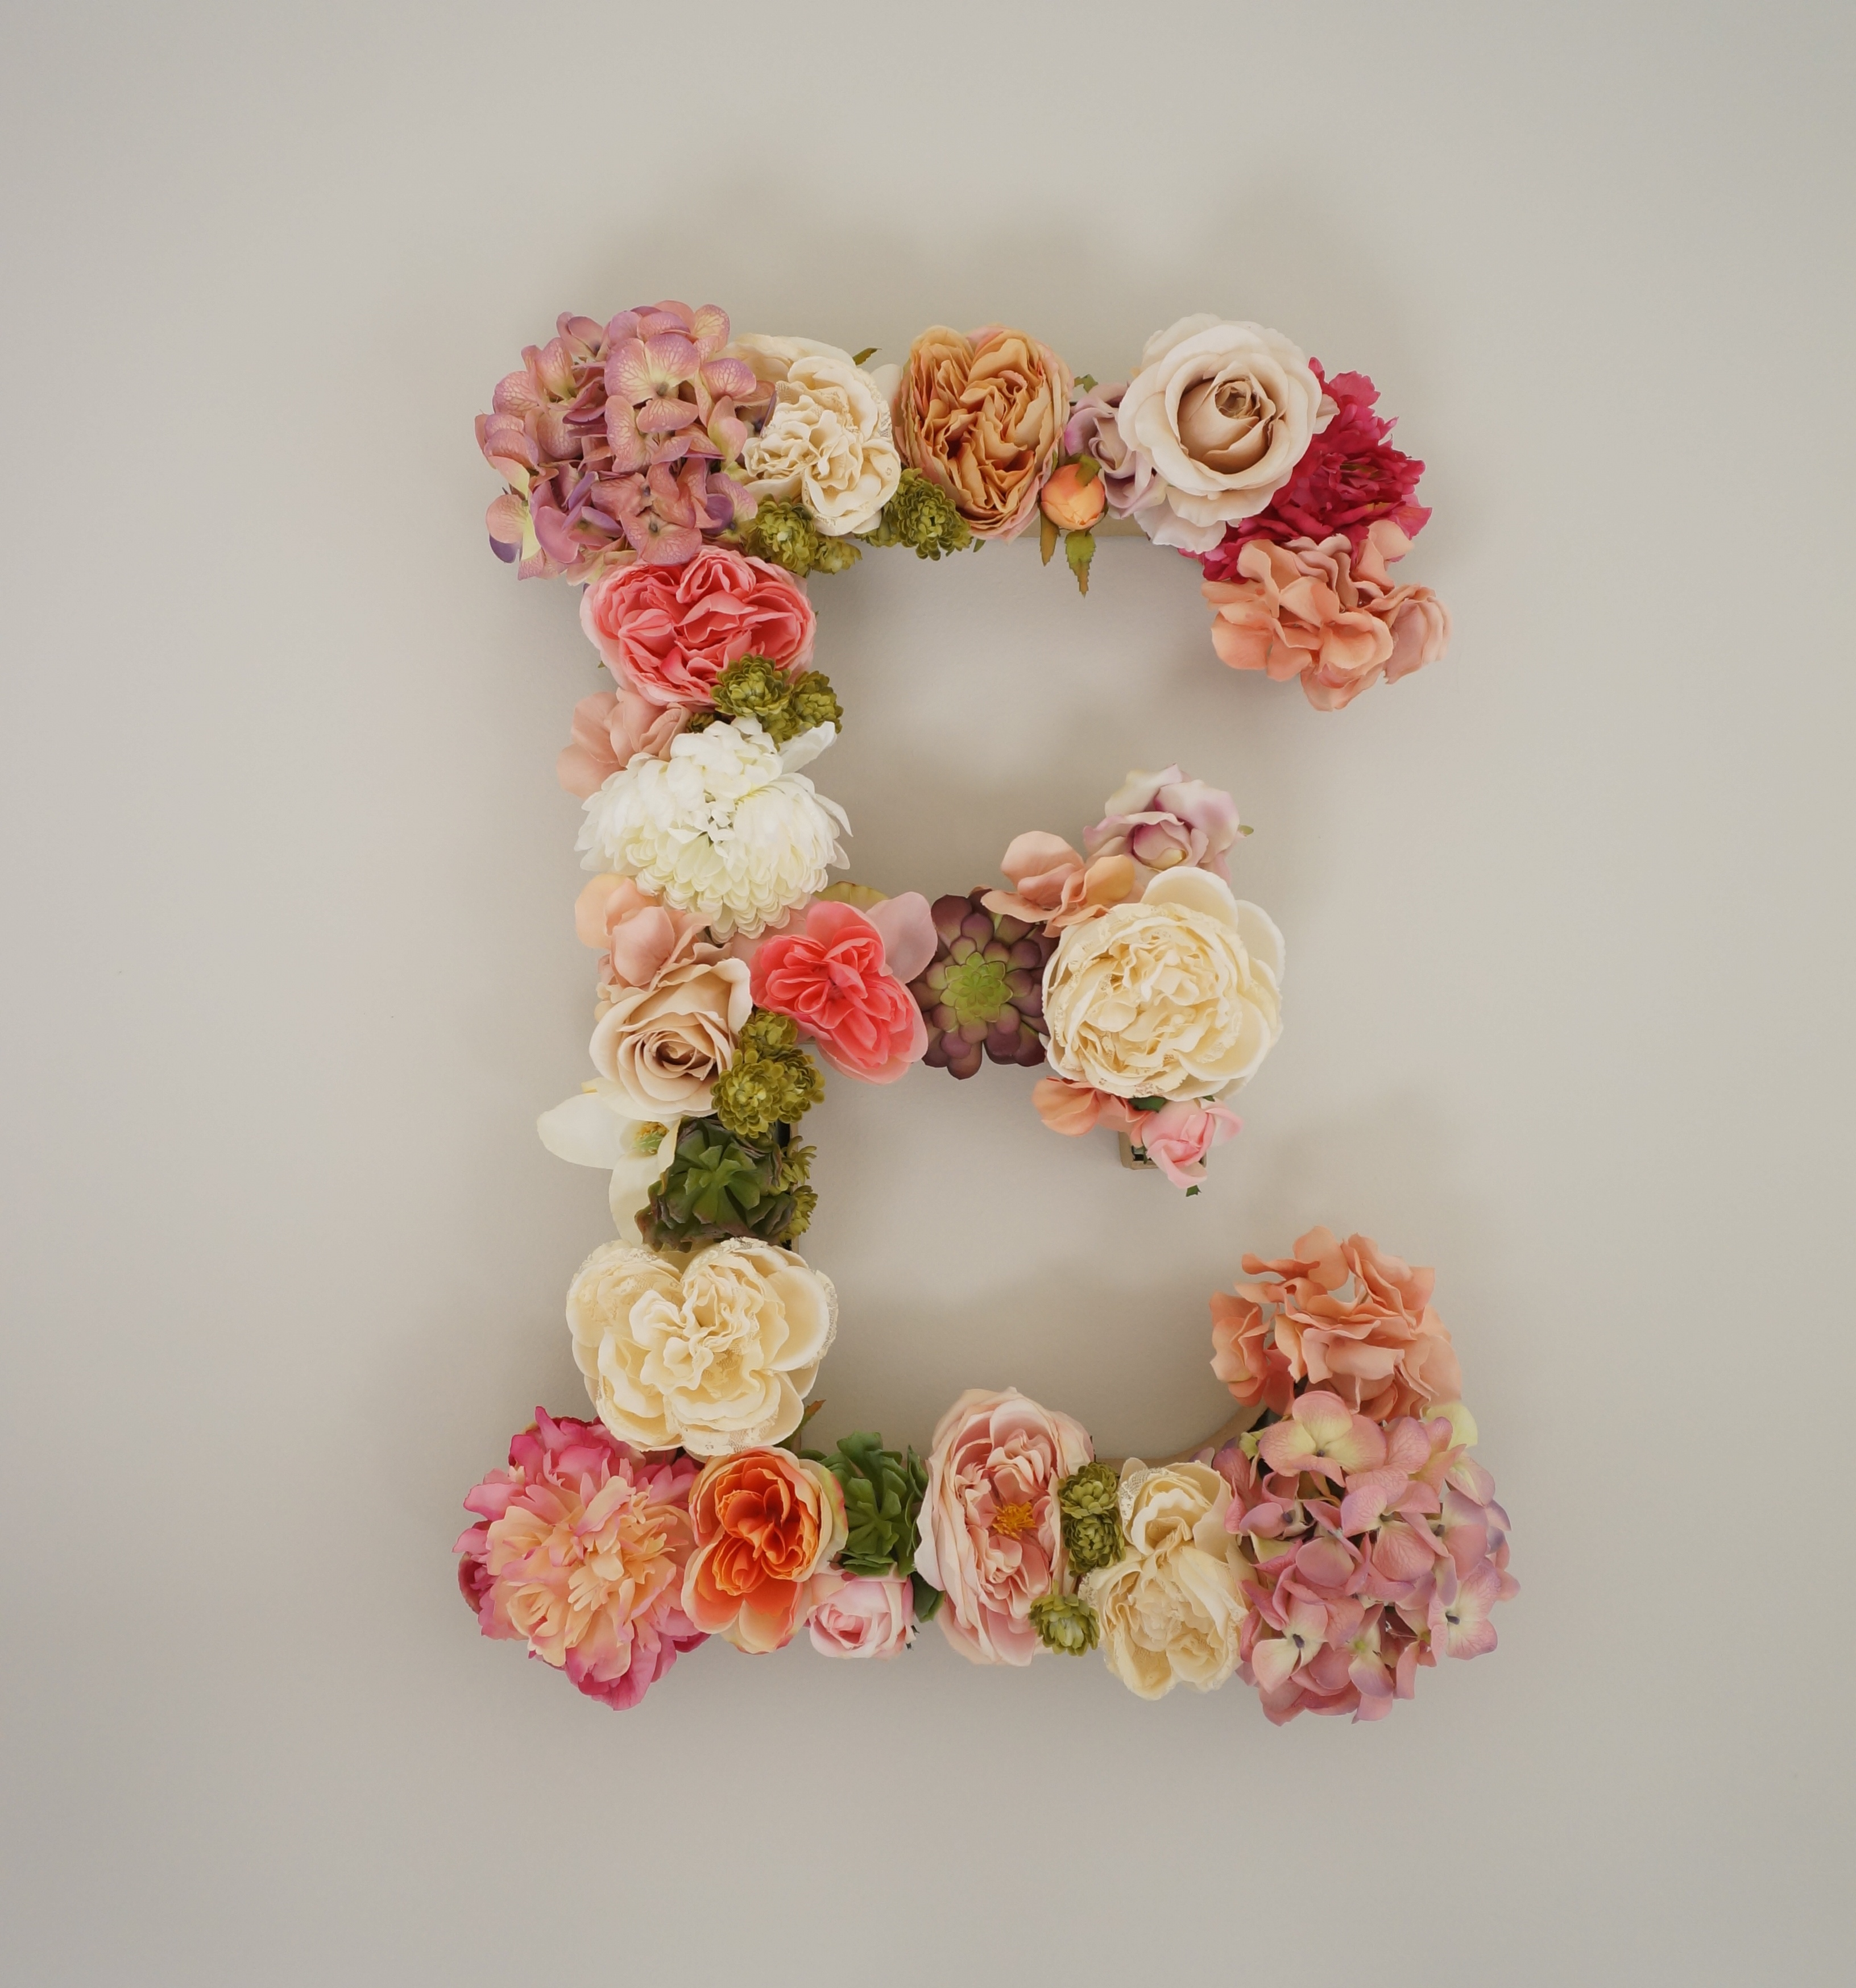 DIY Flowered Letter